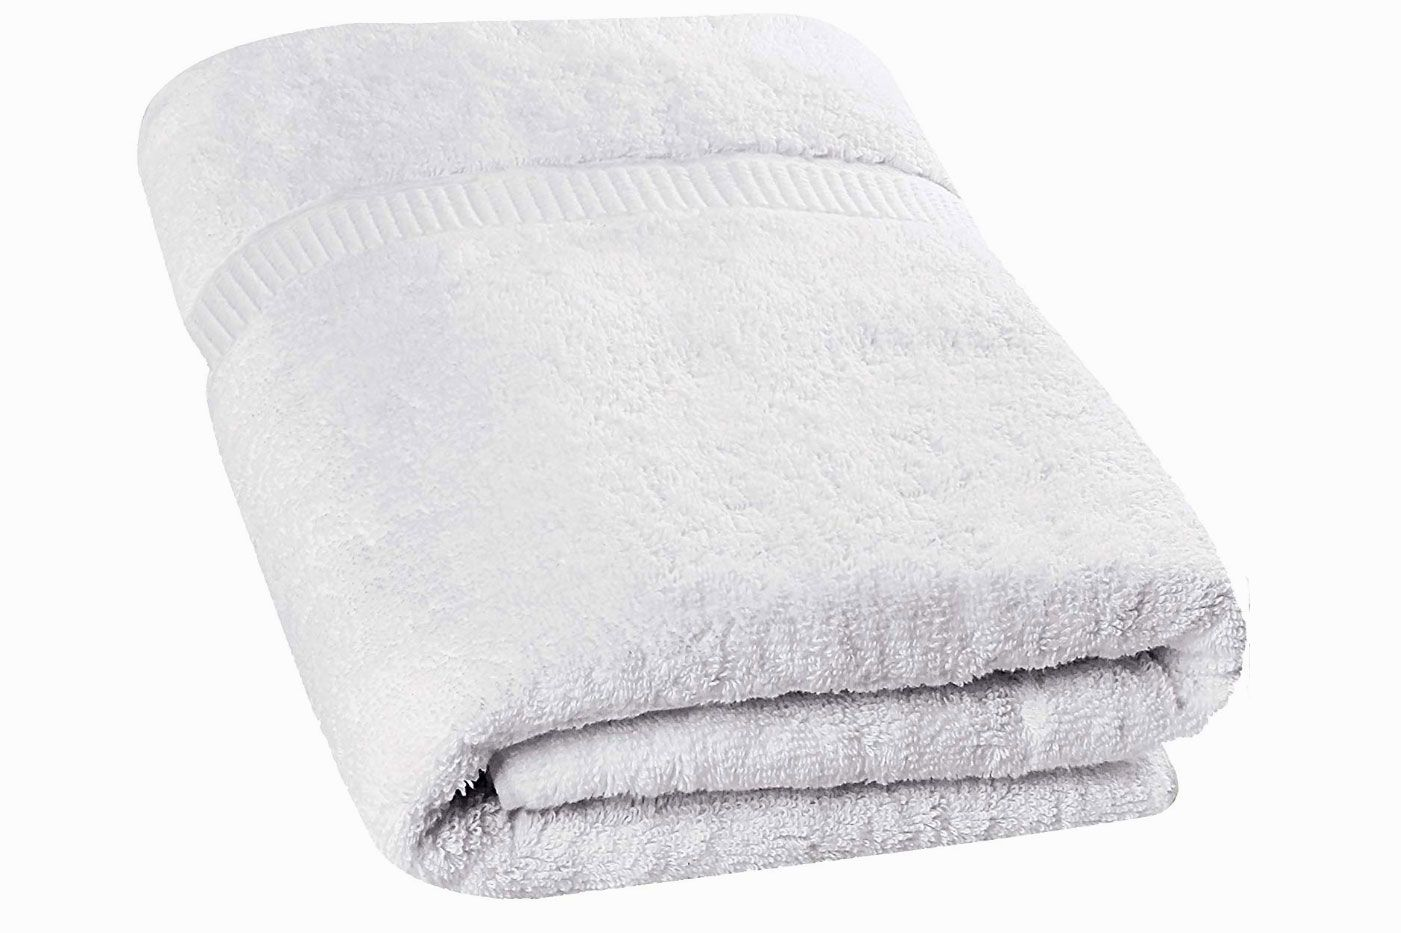 Soft Cotton Machine Washable Extra Large Bath Towel